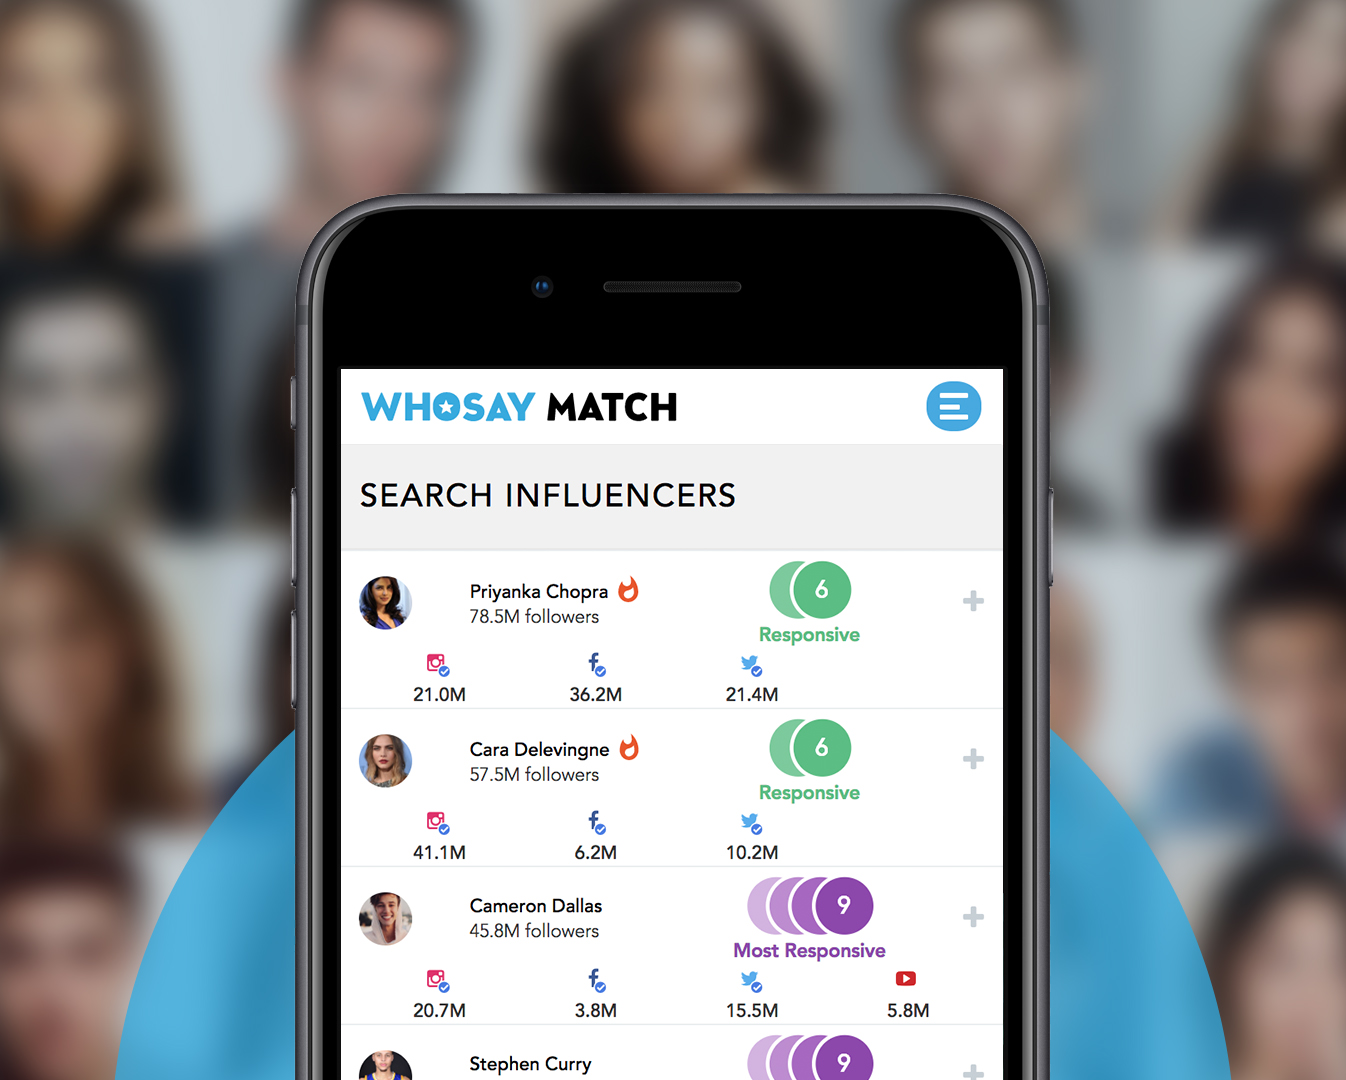 3. Talent - WHOSAY matches your influence campaign to professionally vetted Celebrities, Influencers and Micro Influencers, that have been analyzed for brand safety and retail relevance and alignment. WHOSAY expertly negotiates all content and in-store usage rights, appearances and PR requirements as part of talent contracting, legal, SAG and FTC compliance.